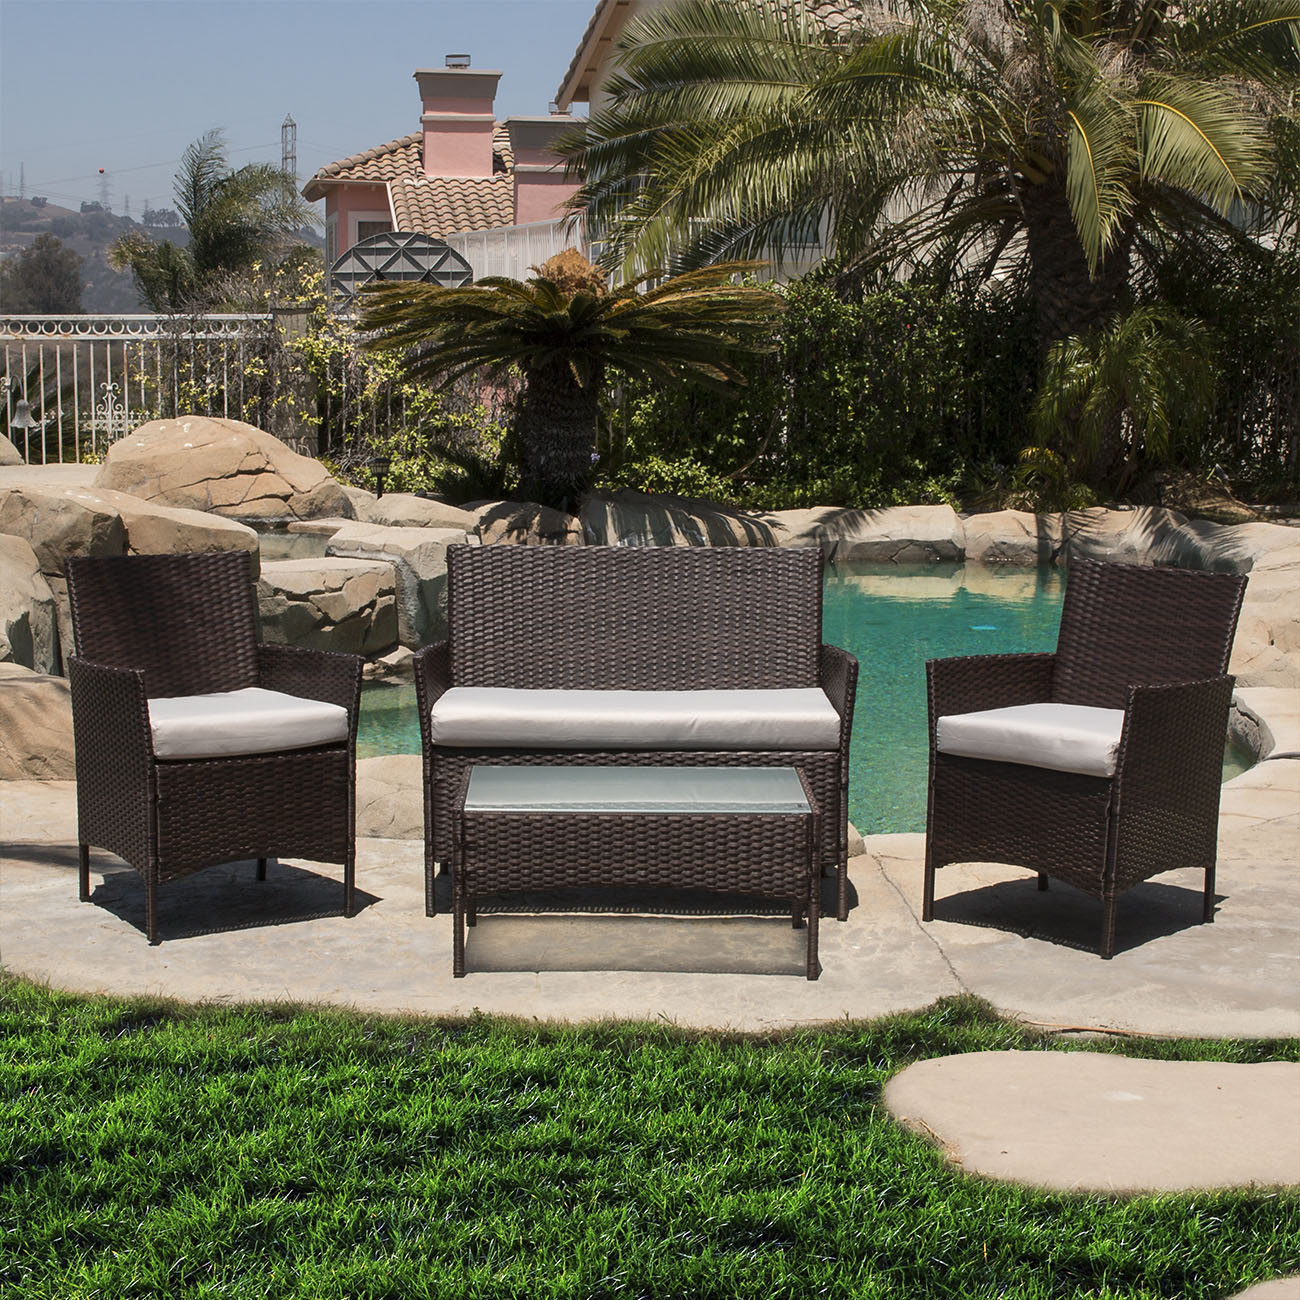 4 Pc Rattan Furniture Set Outdoor Patio Garden Sectional Pe Wicker Cushion Sofa Ebay